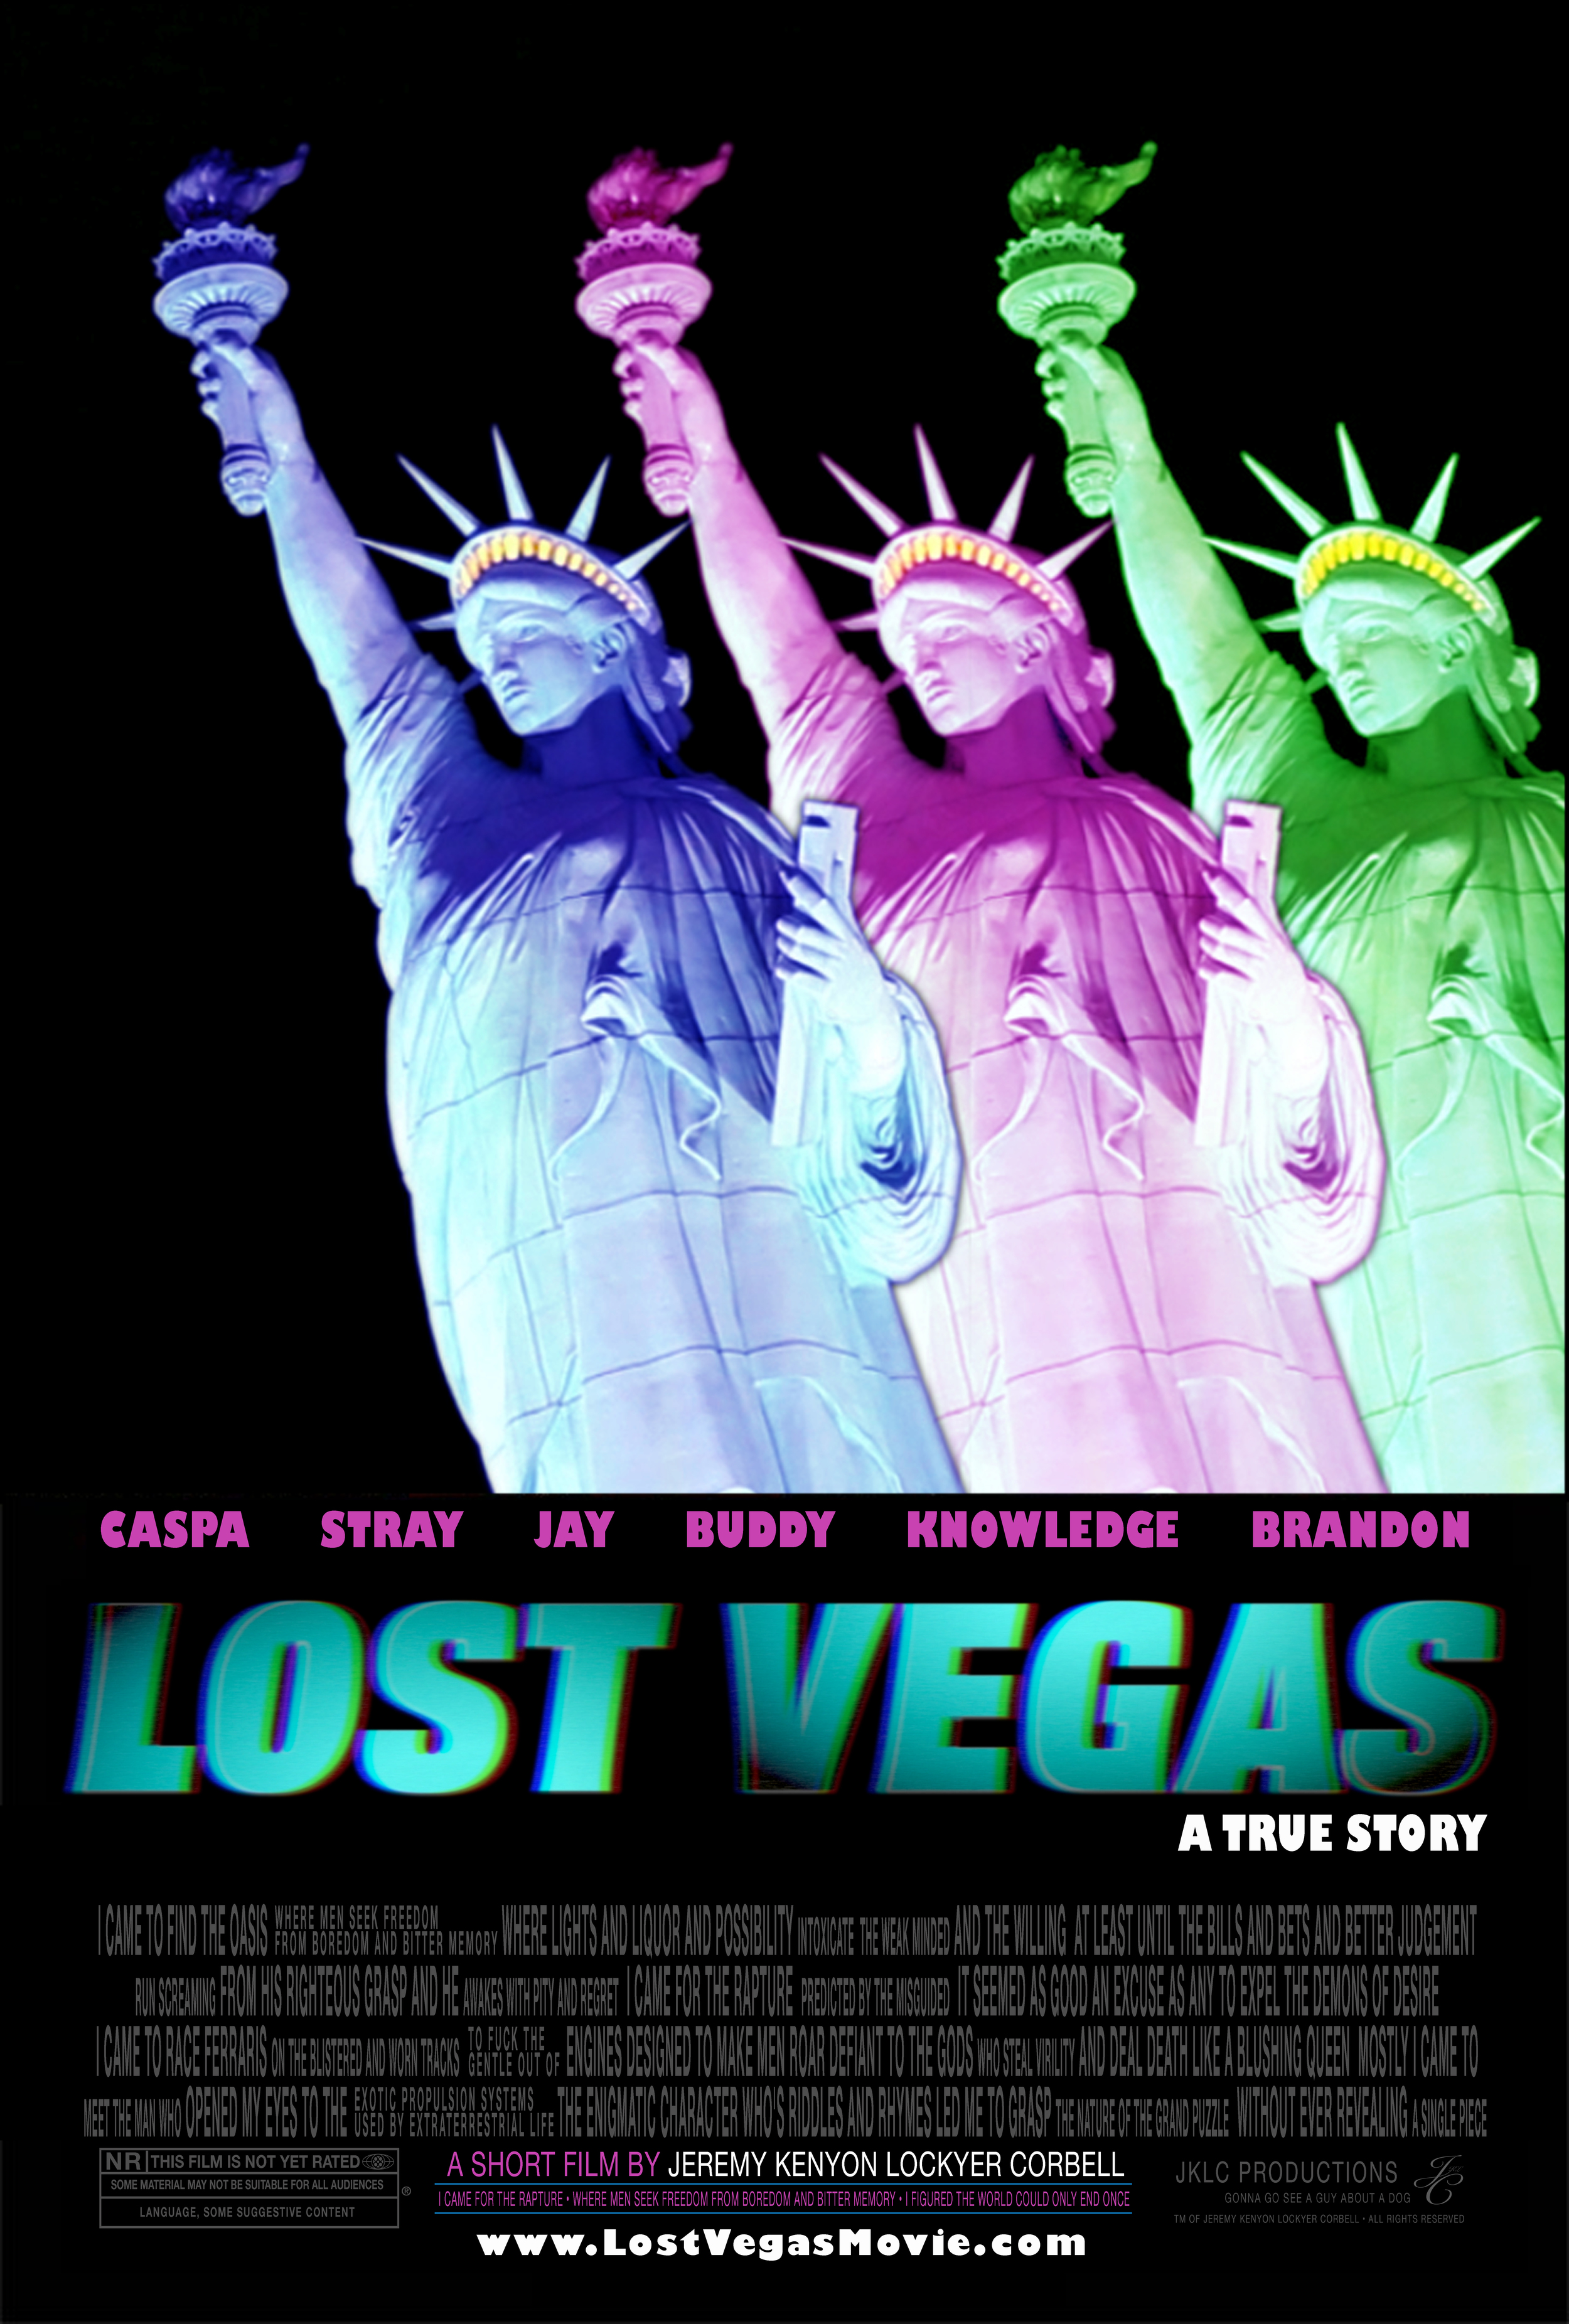 Lost Vegas Movie Poster